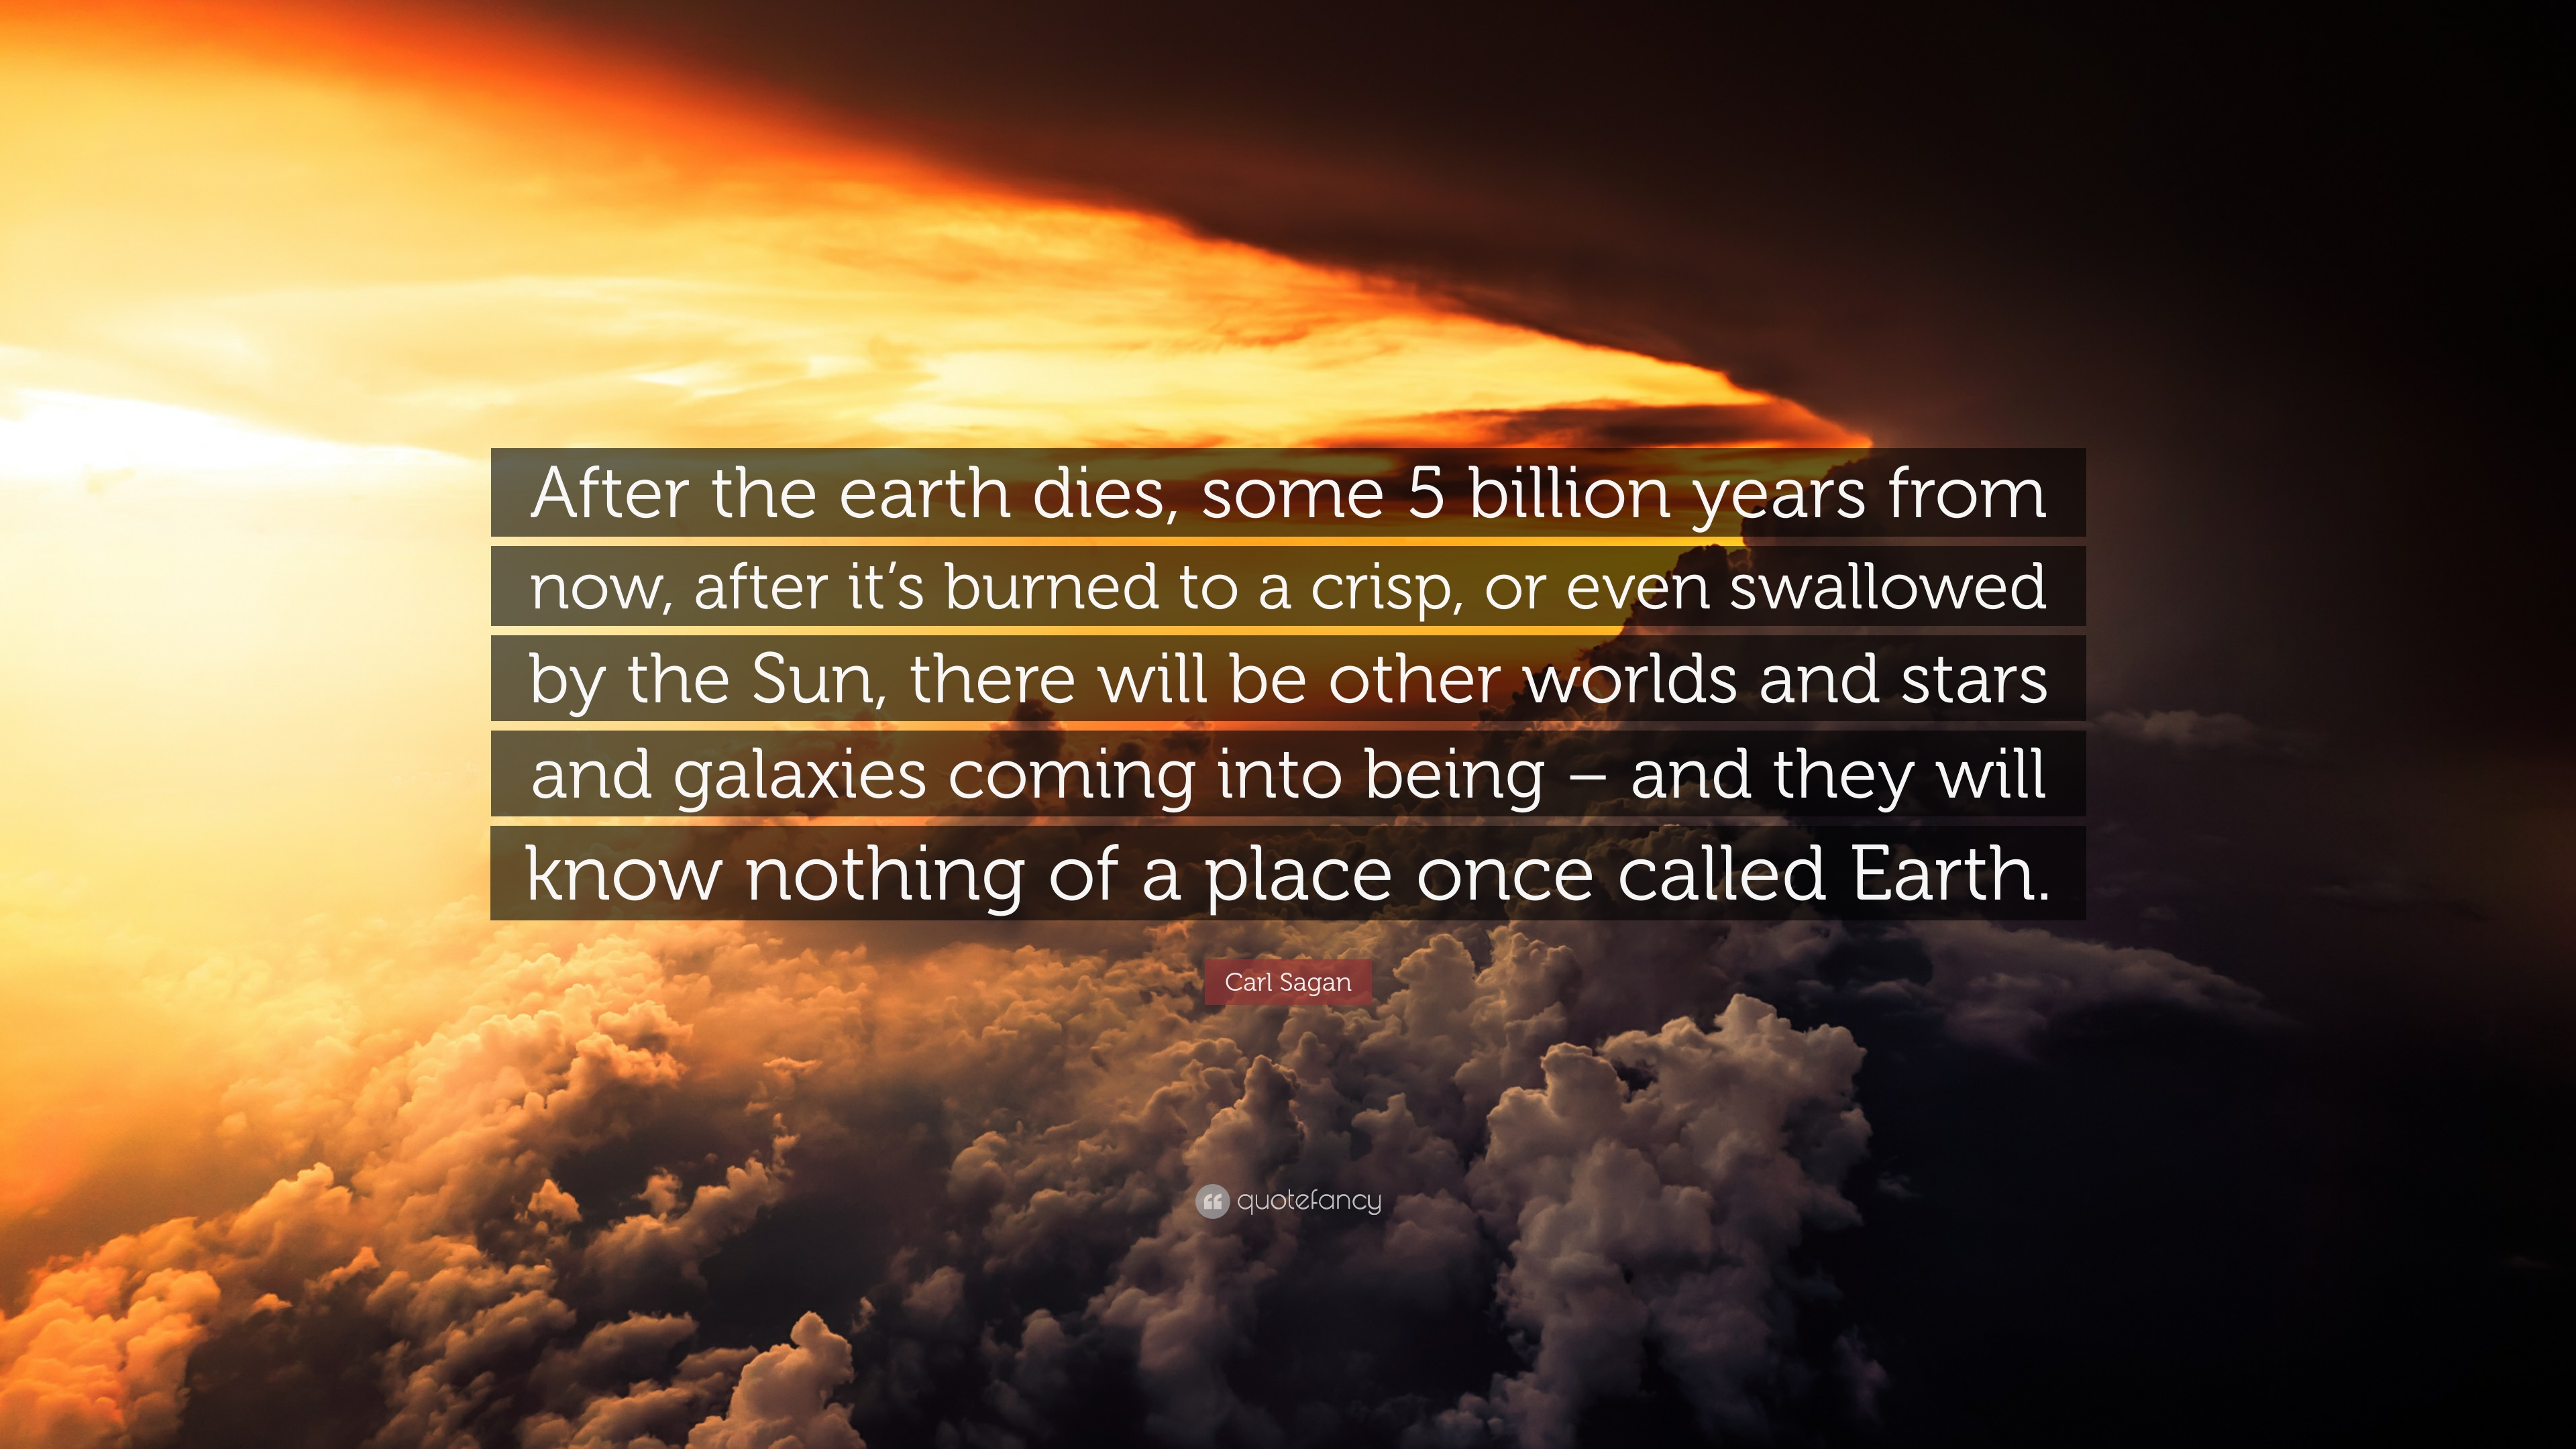 It Dies Today Quotes Wallpaper Carl Sagan Quote After The Earth Dies Some 5 Billion